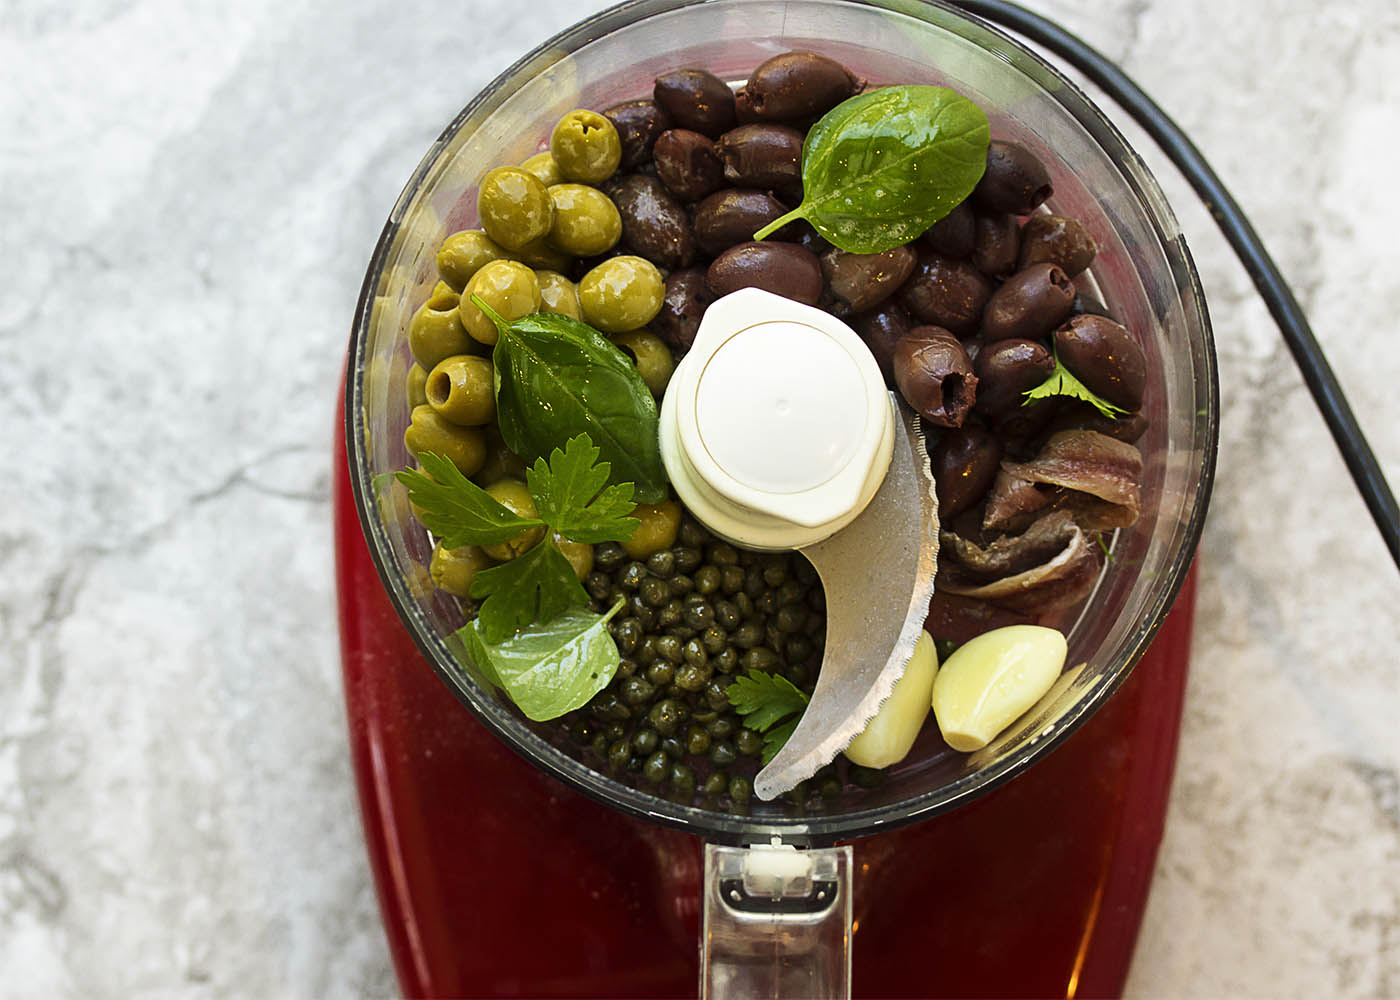 5 Minute Tapenade Mayonnaise - Black and green olives combine with oil-packed anchovy fillets, capers, and a dollop of mayo in this quick, easy, and yummy tapenade. Great as a dip, a topping for bruschetta, alongside grilled meats and fish, or in any other recipe that needs a hit of flavor. | justalittlebitofbacon.com